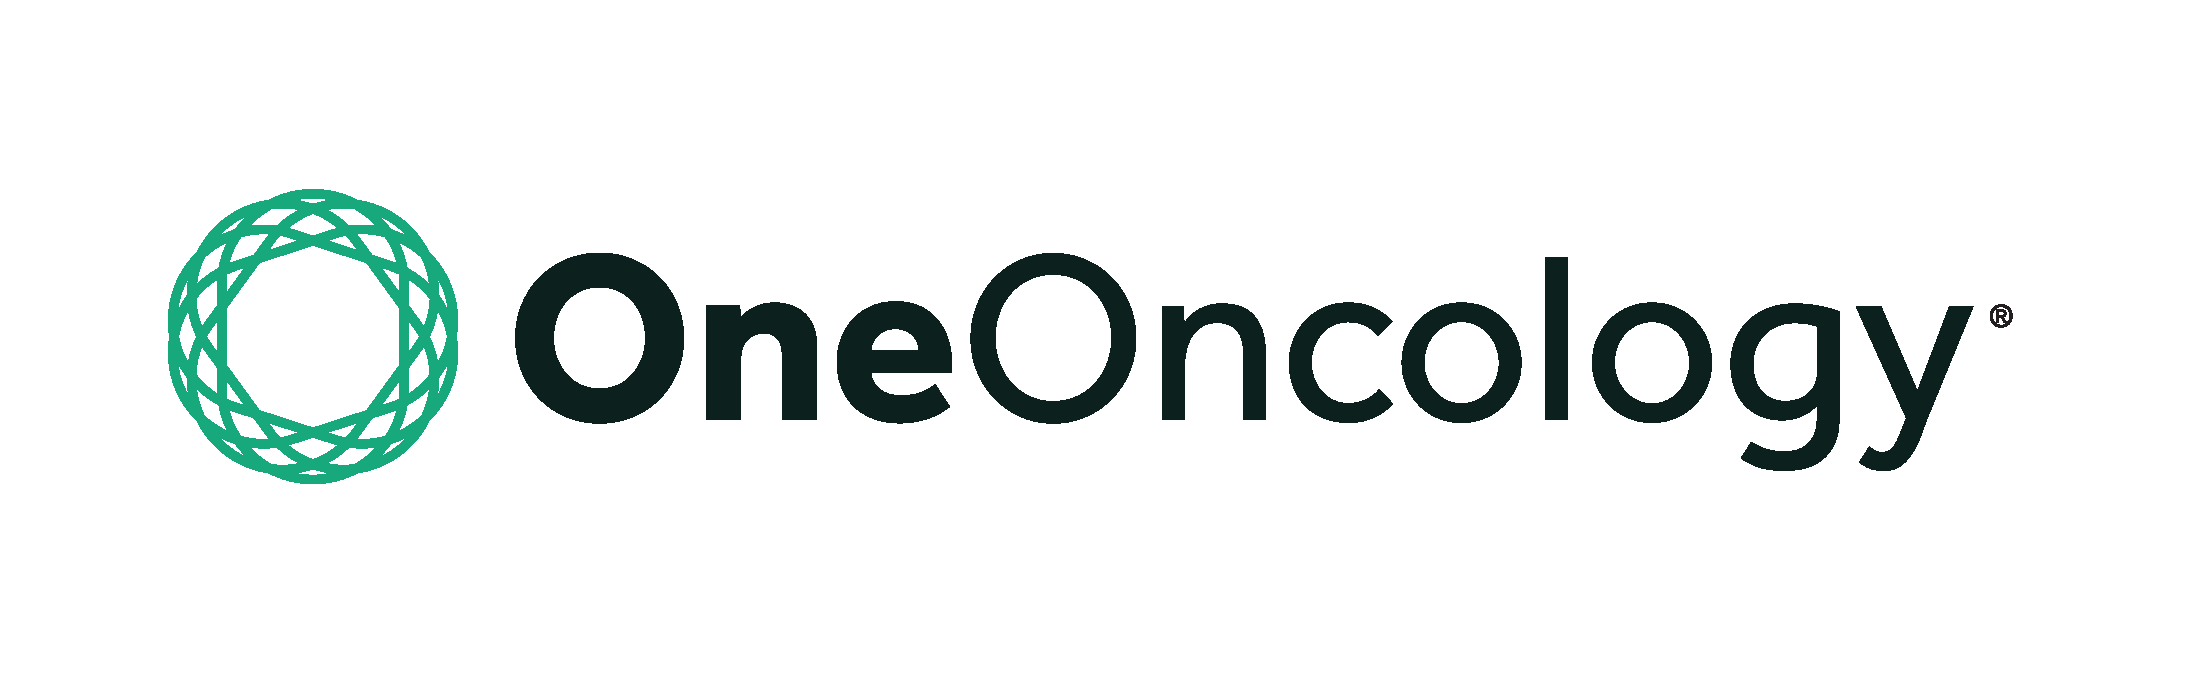 One Oncology logo